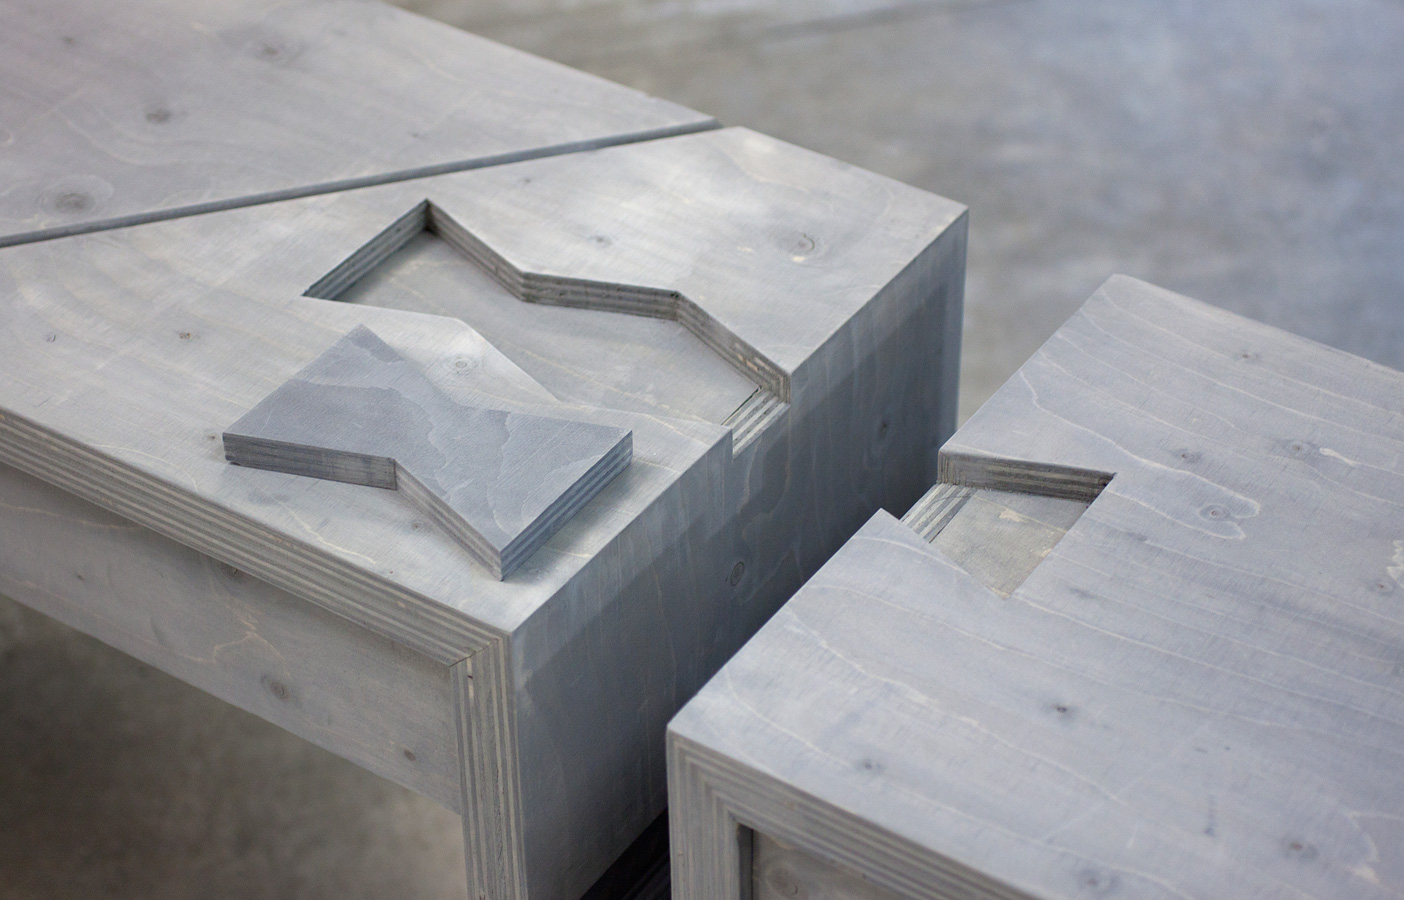 Aldworth James & Bond | Nesting Table for Build at LDF - butterfly joint detail